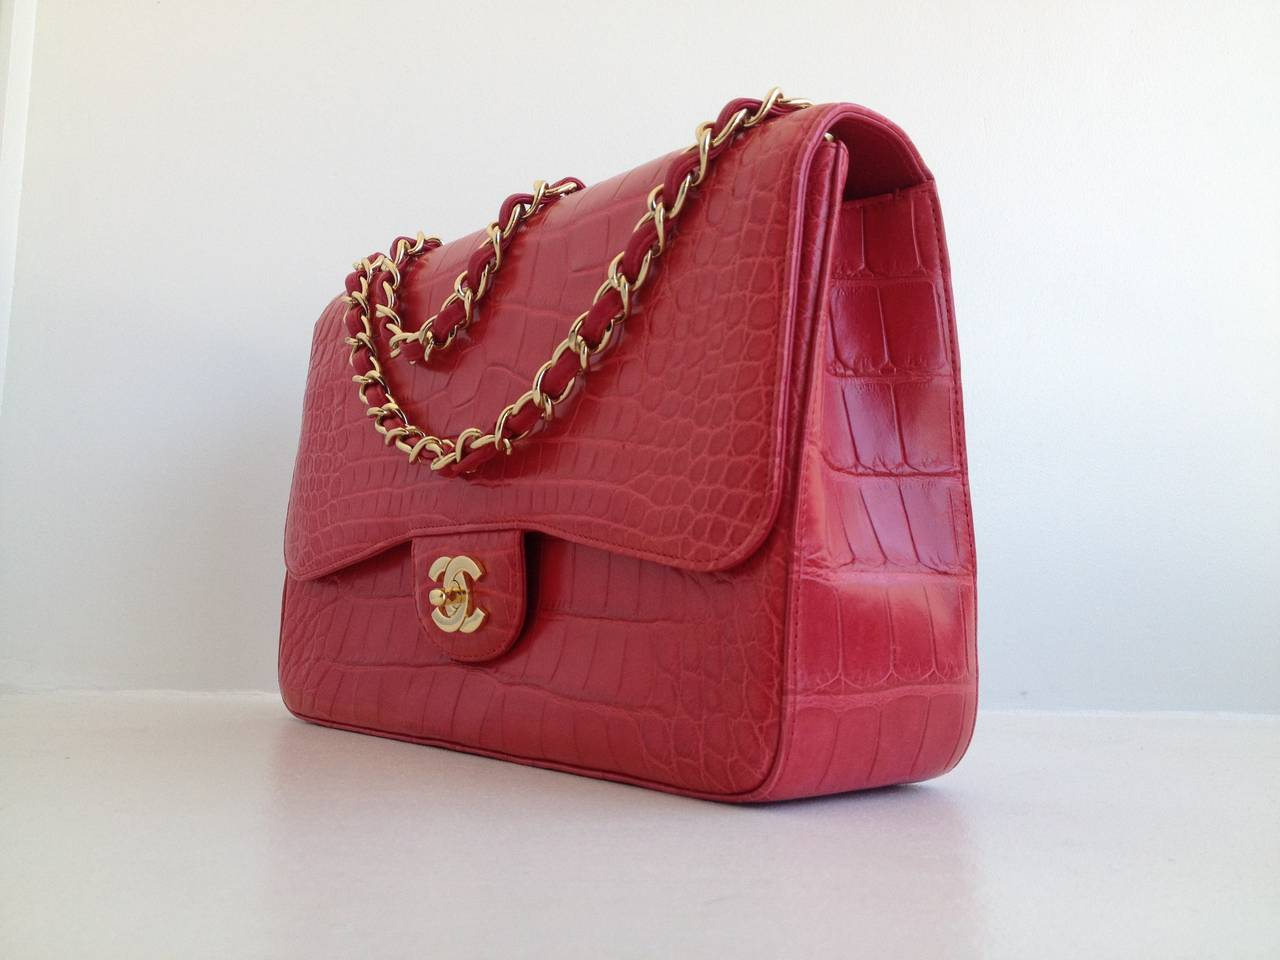 6e2a16771b6b4e Chanel Red Alligator Jumbo Classic Single Flap Bag For Sale. Nothing is  more special than this iconic piece - the classic flap style is so Chanel